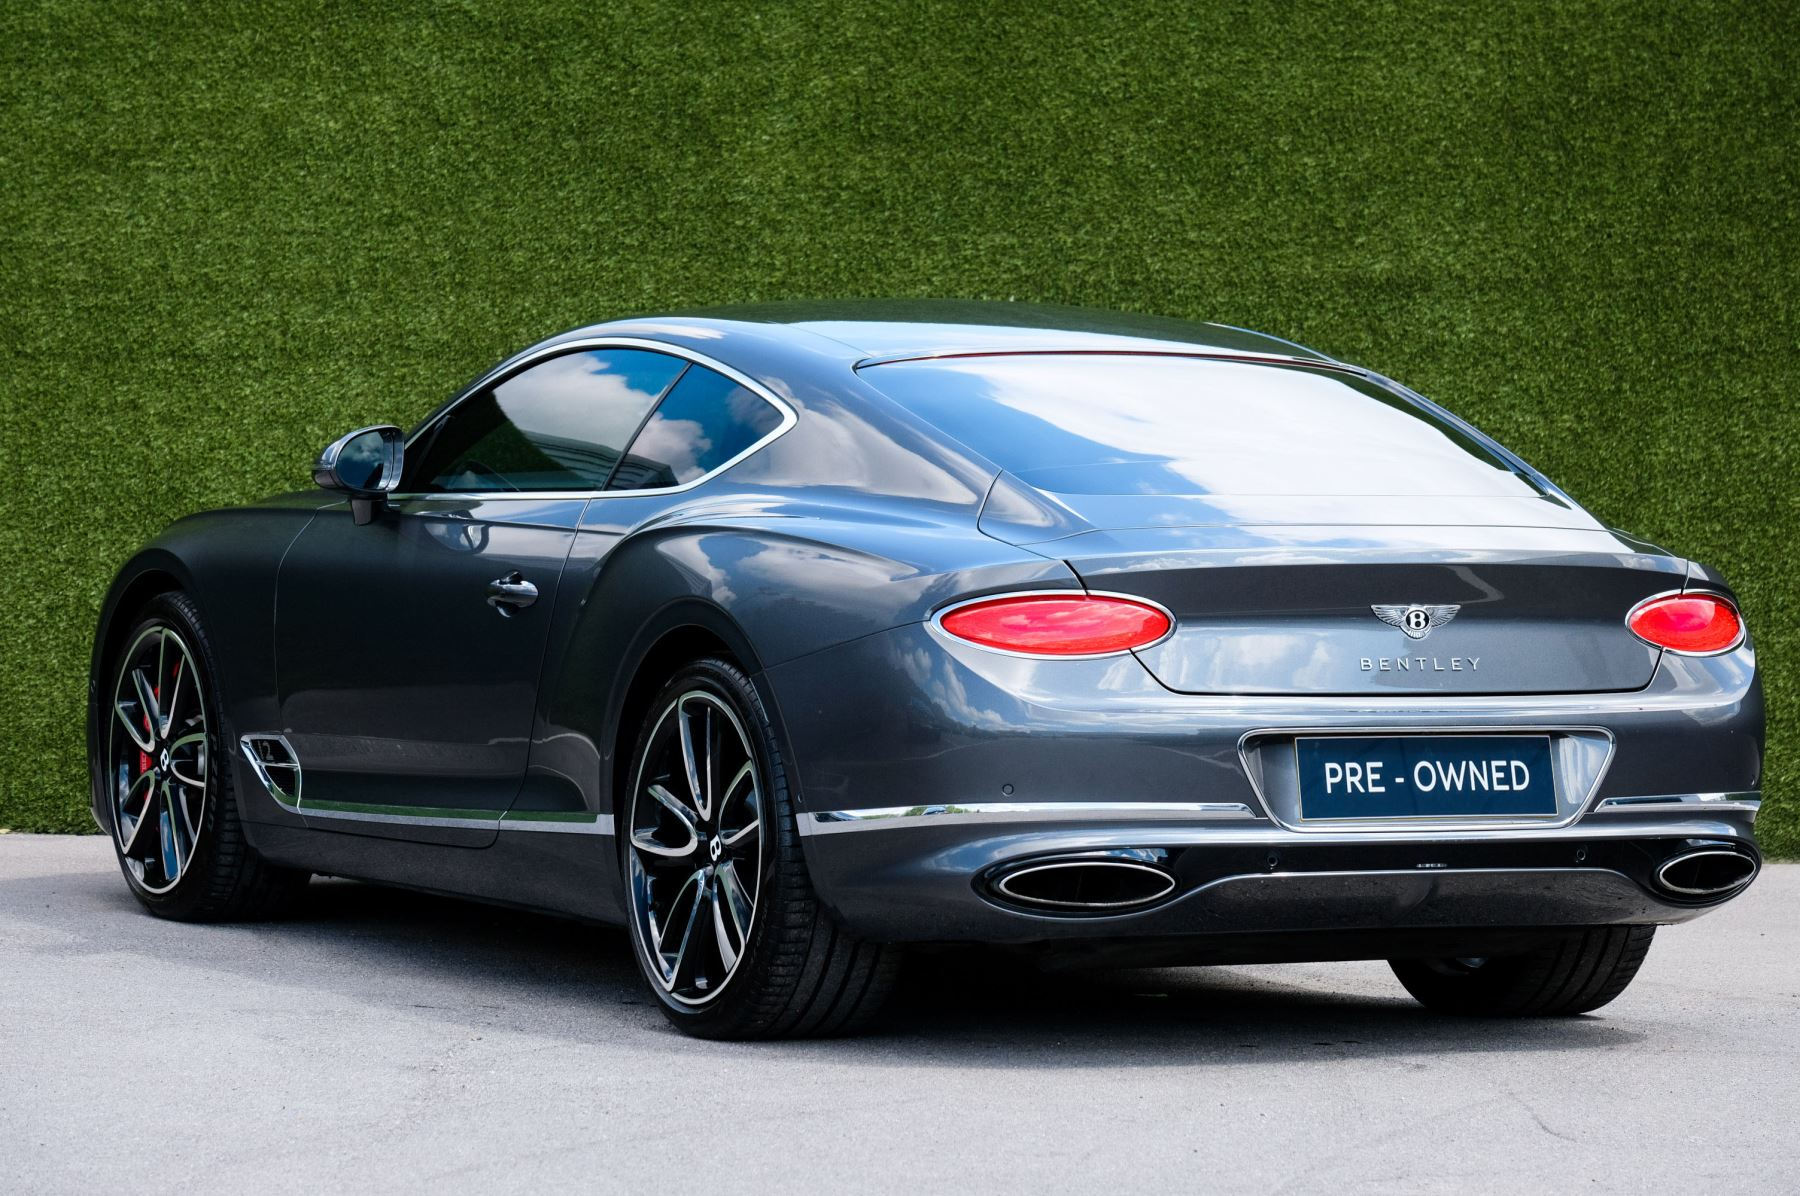 Bentley Continental GT 6.0 W12 - Mulliner Driving Specification image 5